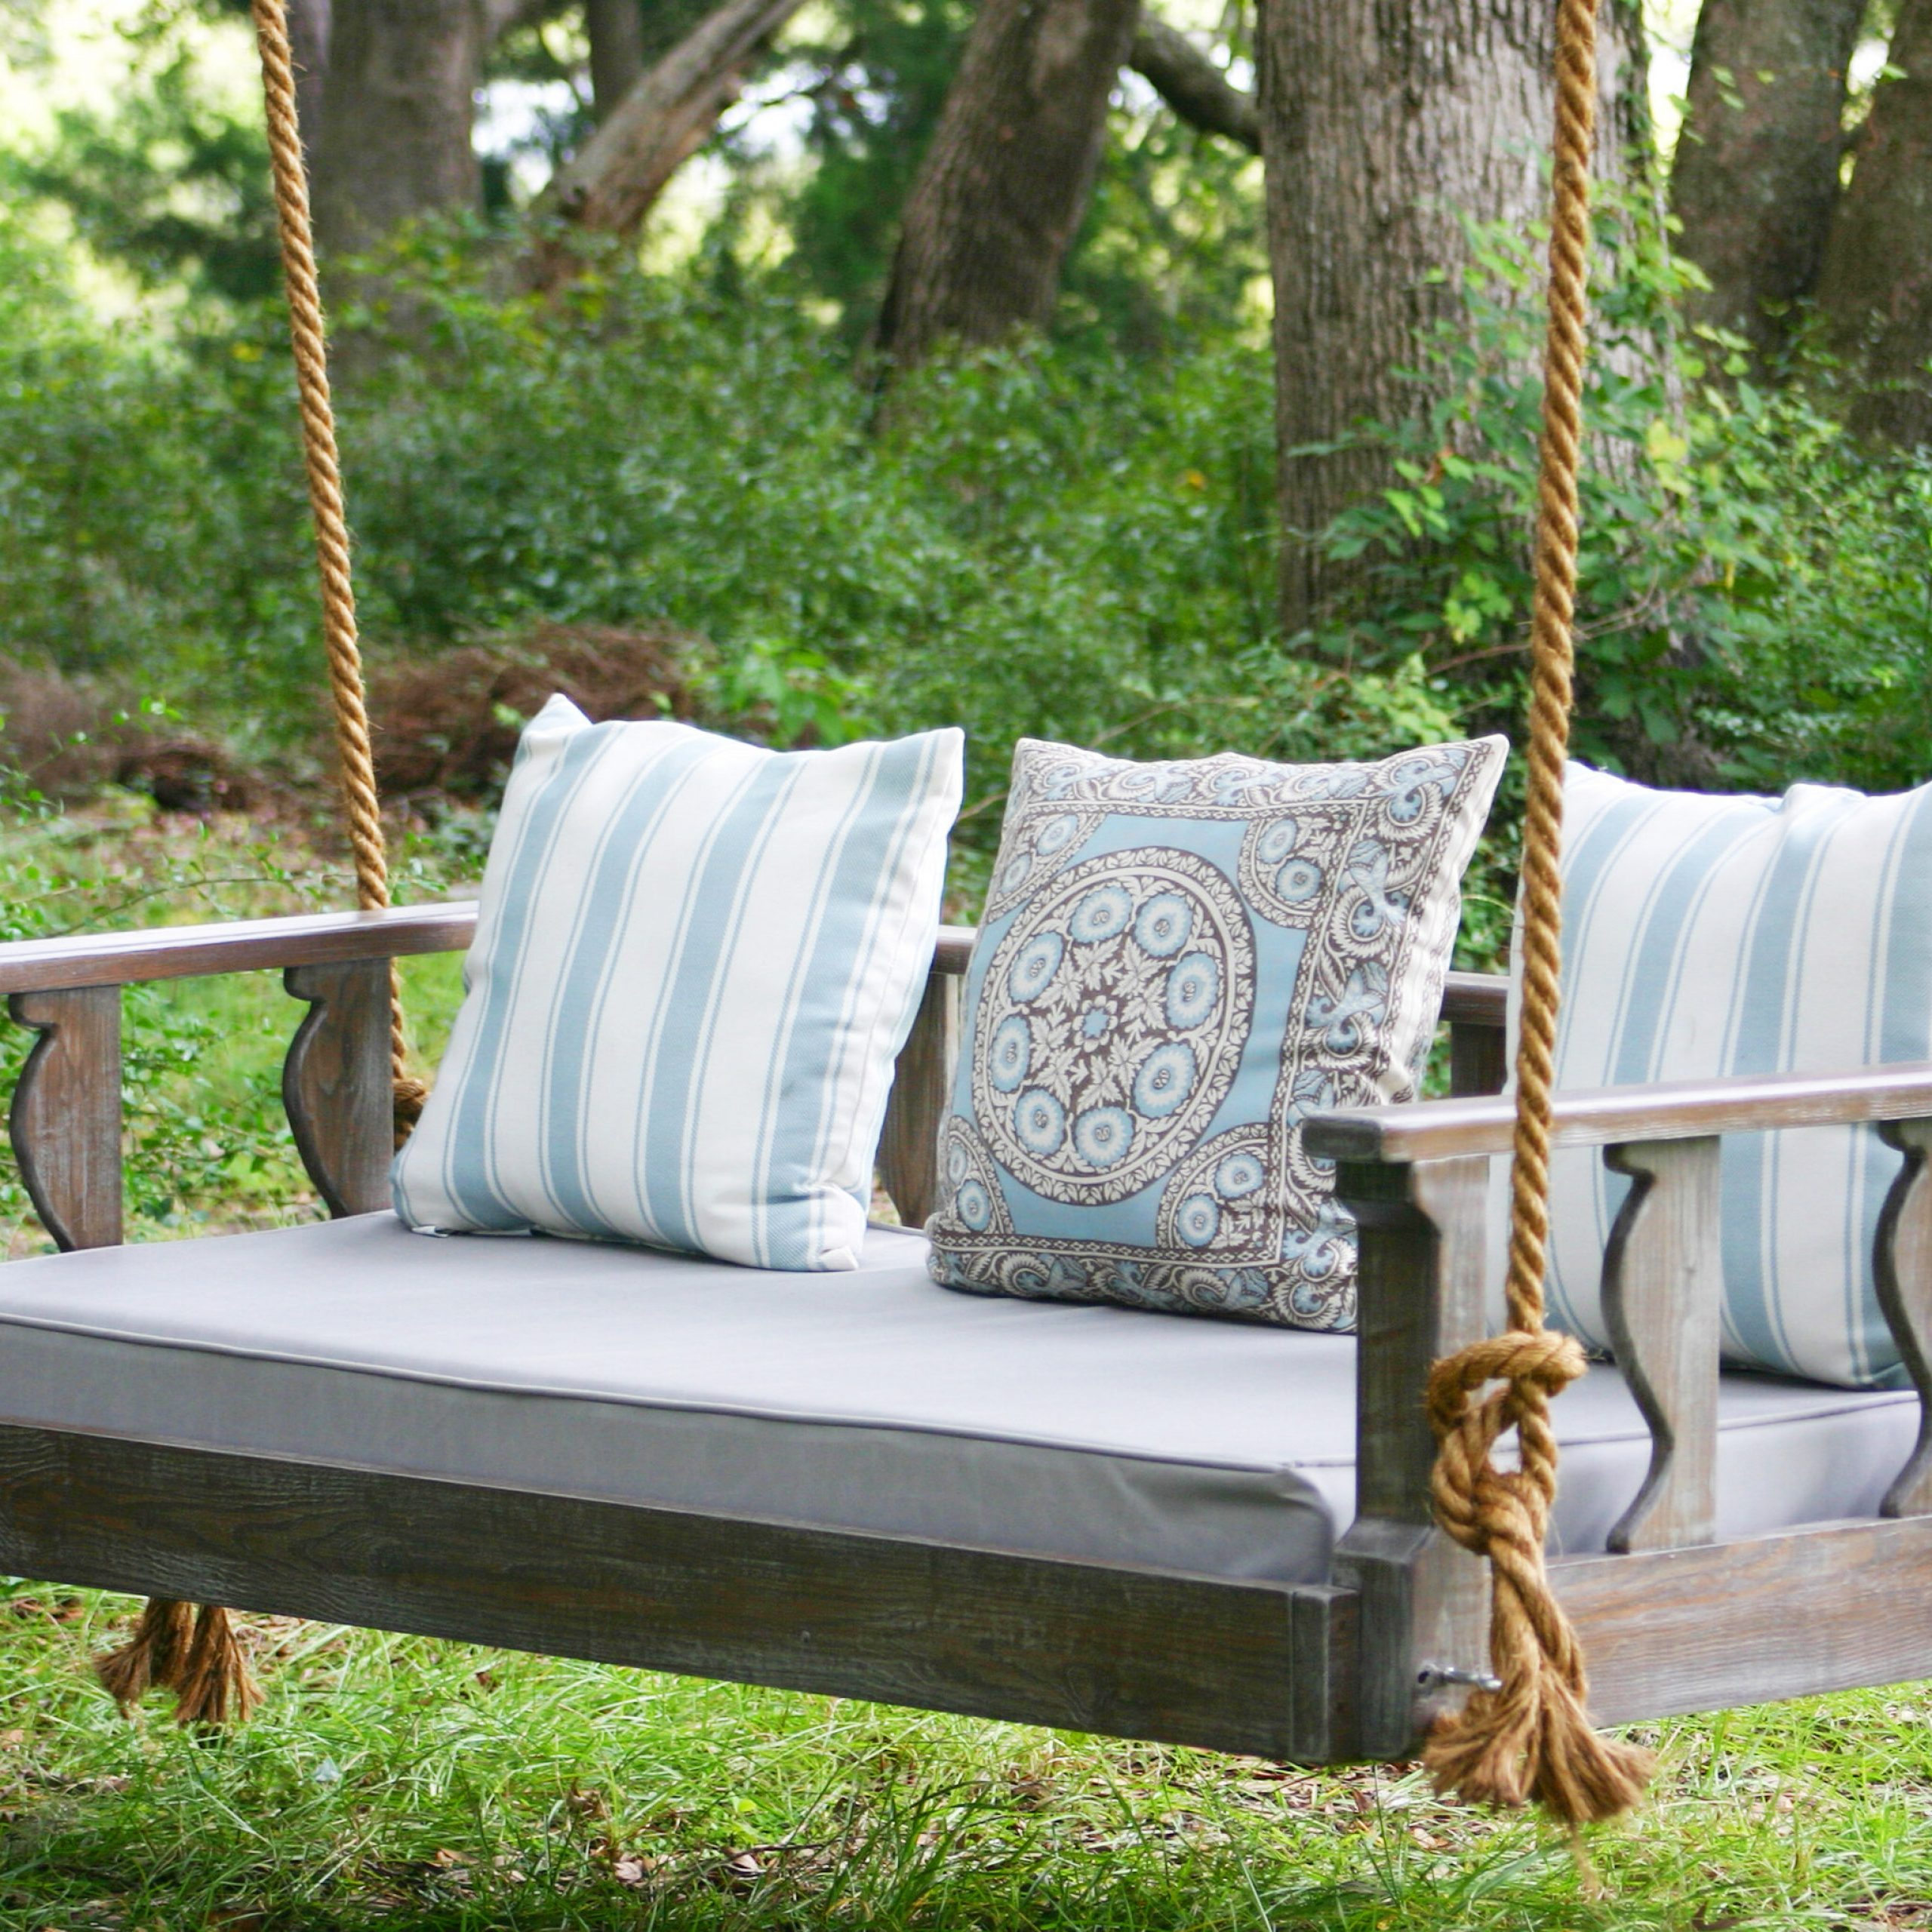 Most Recent Classic Porch Swings Within Avari Porch Swing (View 2 of 25)